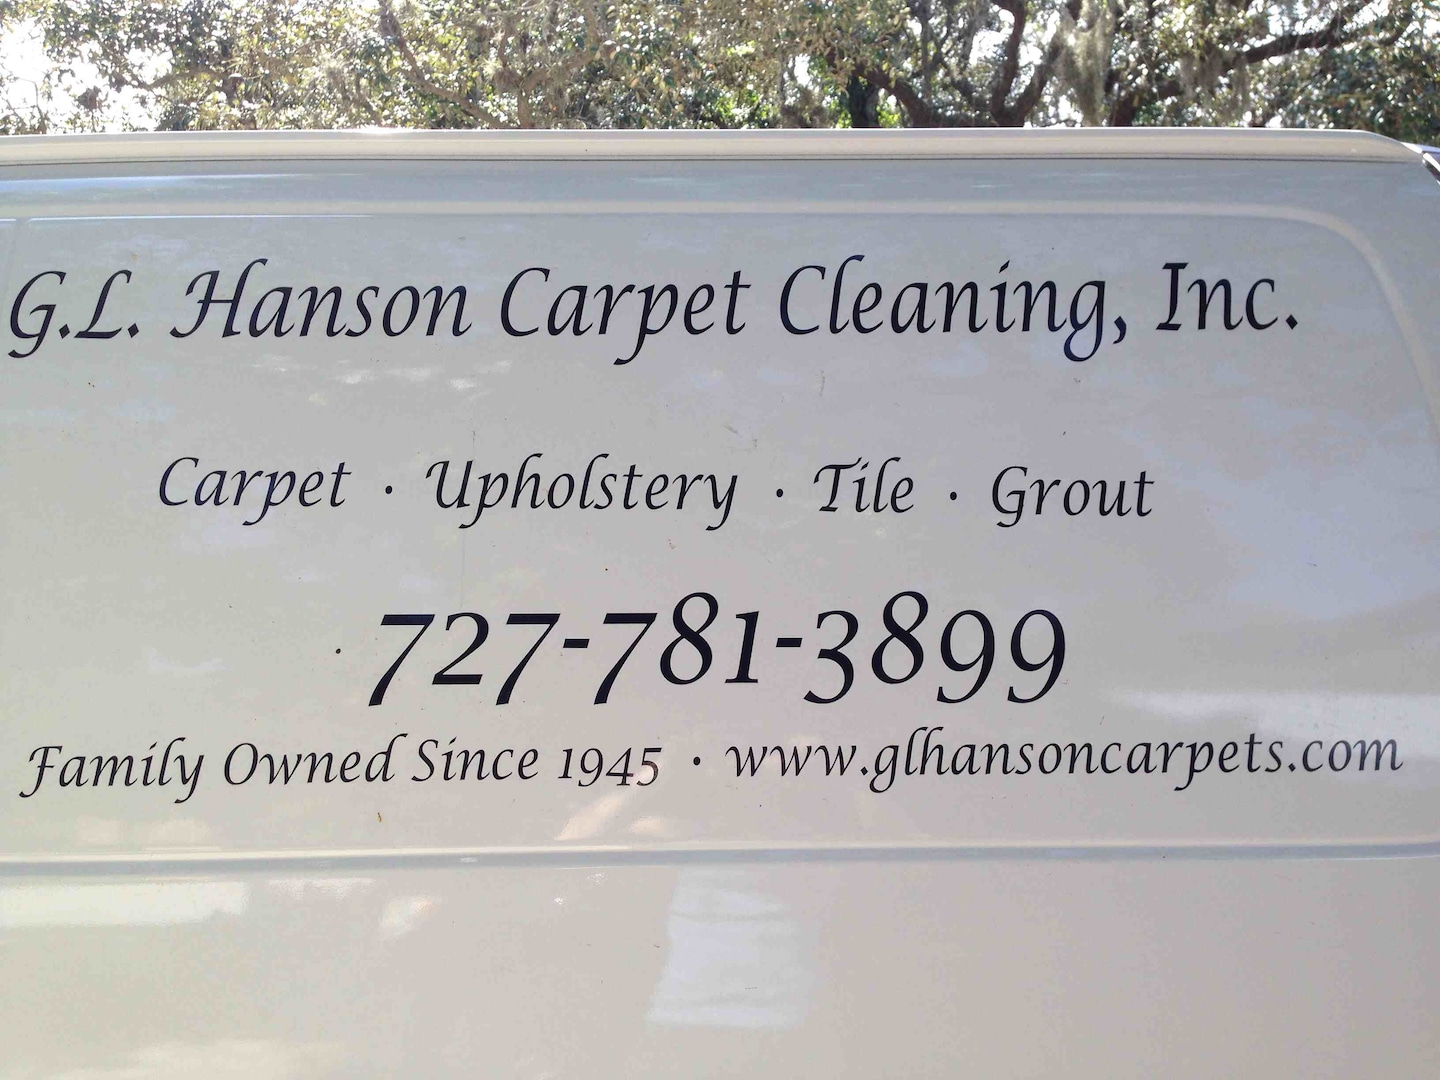 HANSON CARPET CLEANING INC